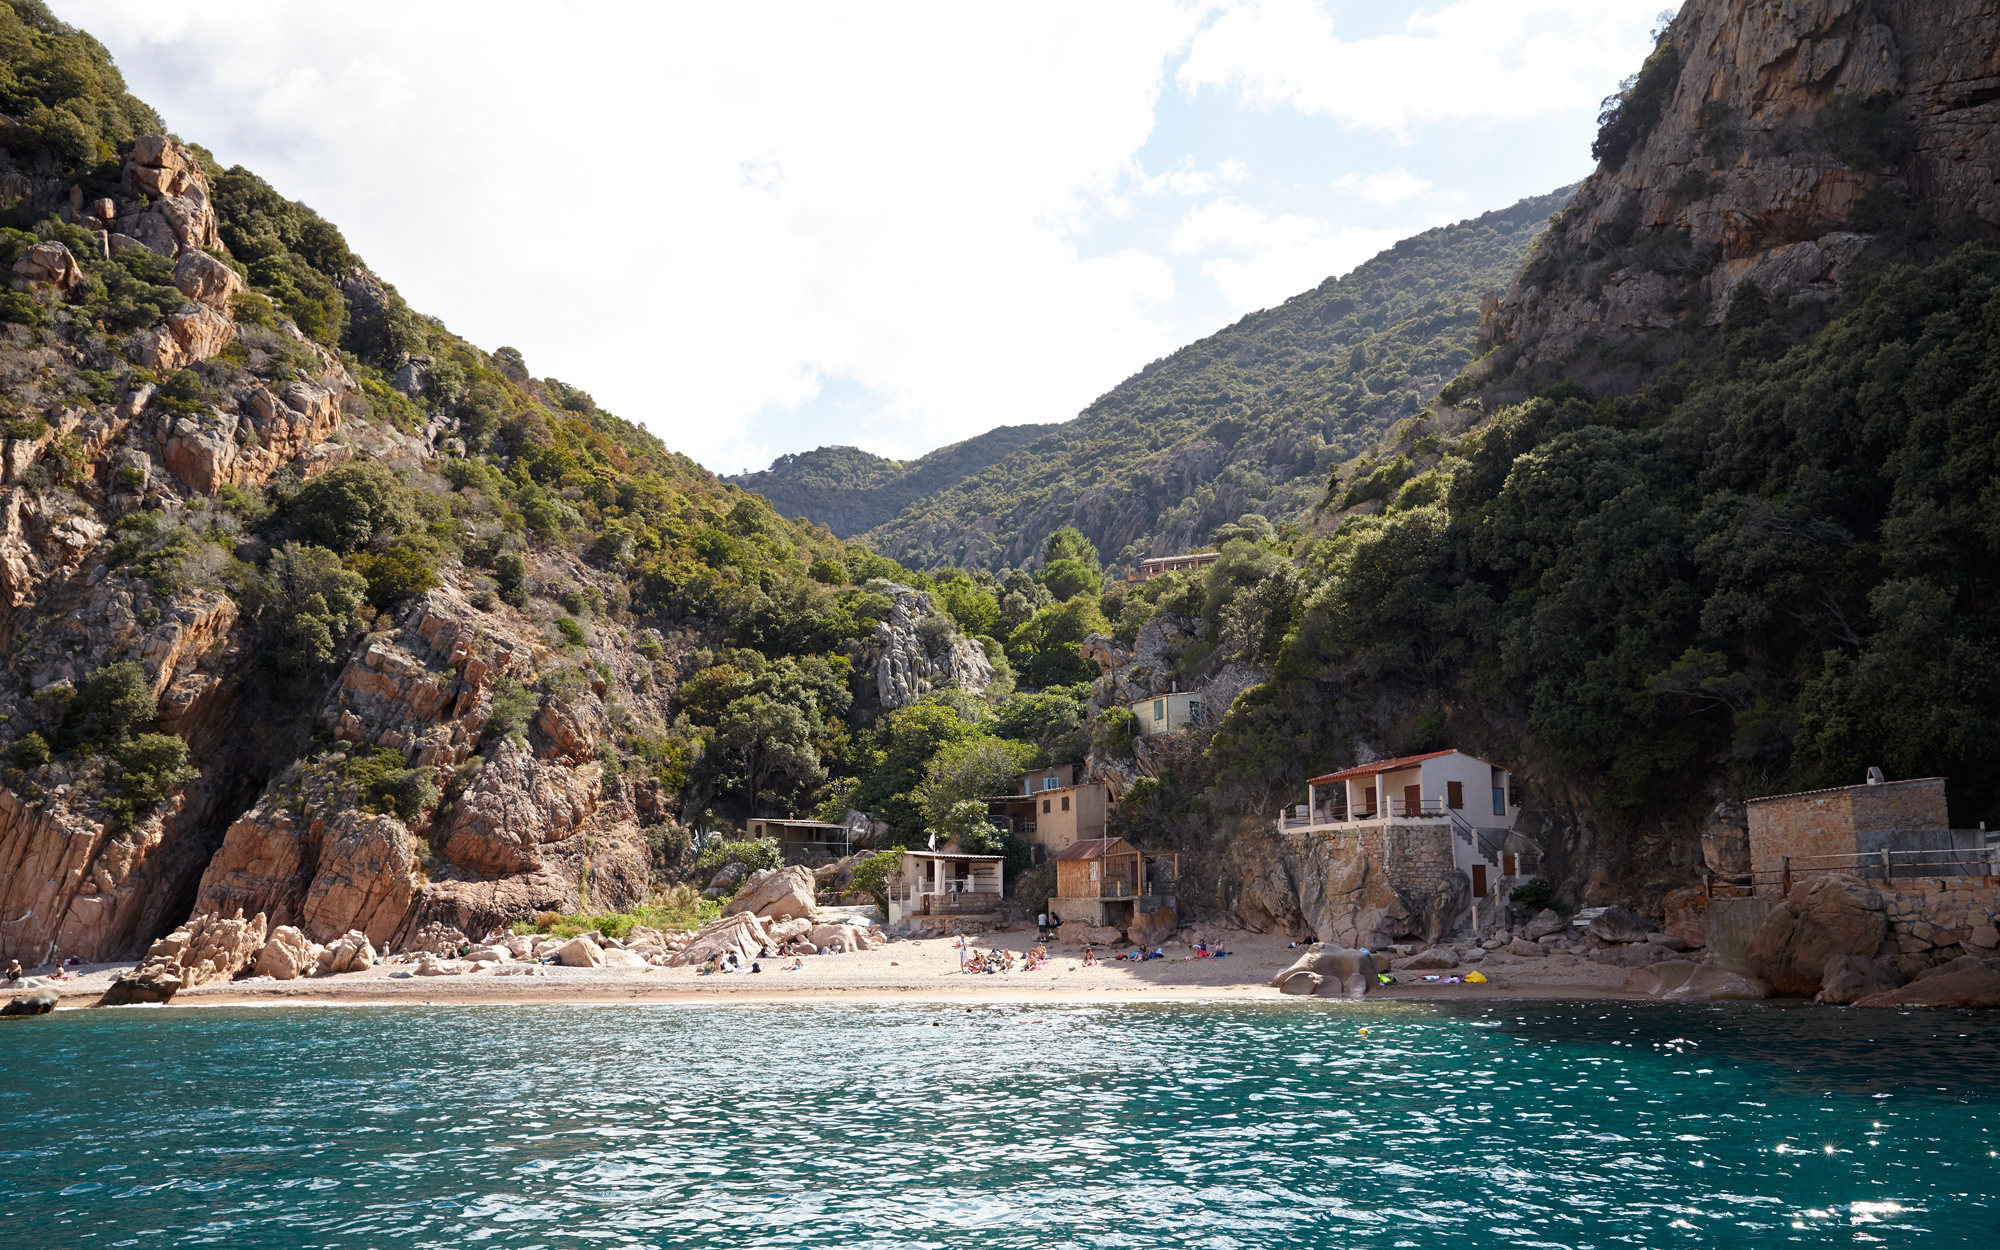 Corsica's Wild Beaches, Mountains, and Beauty